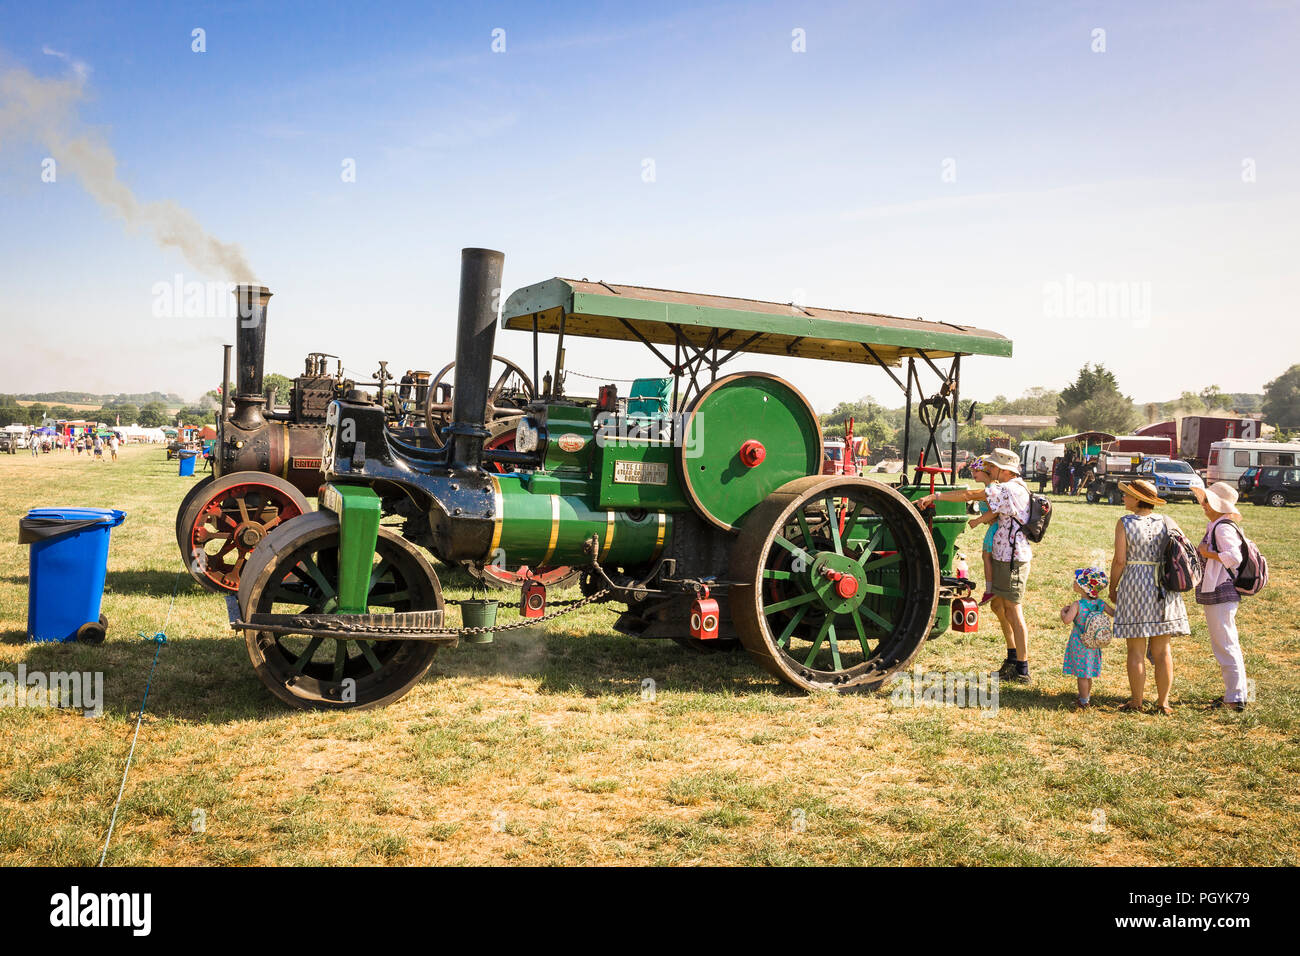 An old Aveling & Porter steam roller on display at Heddington Country Show 2018 in Wiltshire England UK - Stock Image